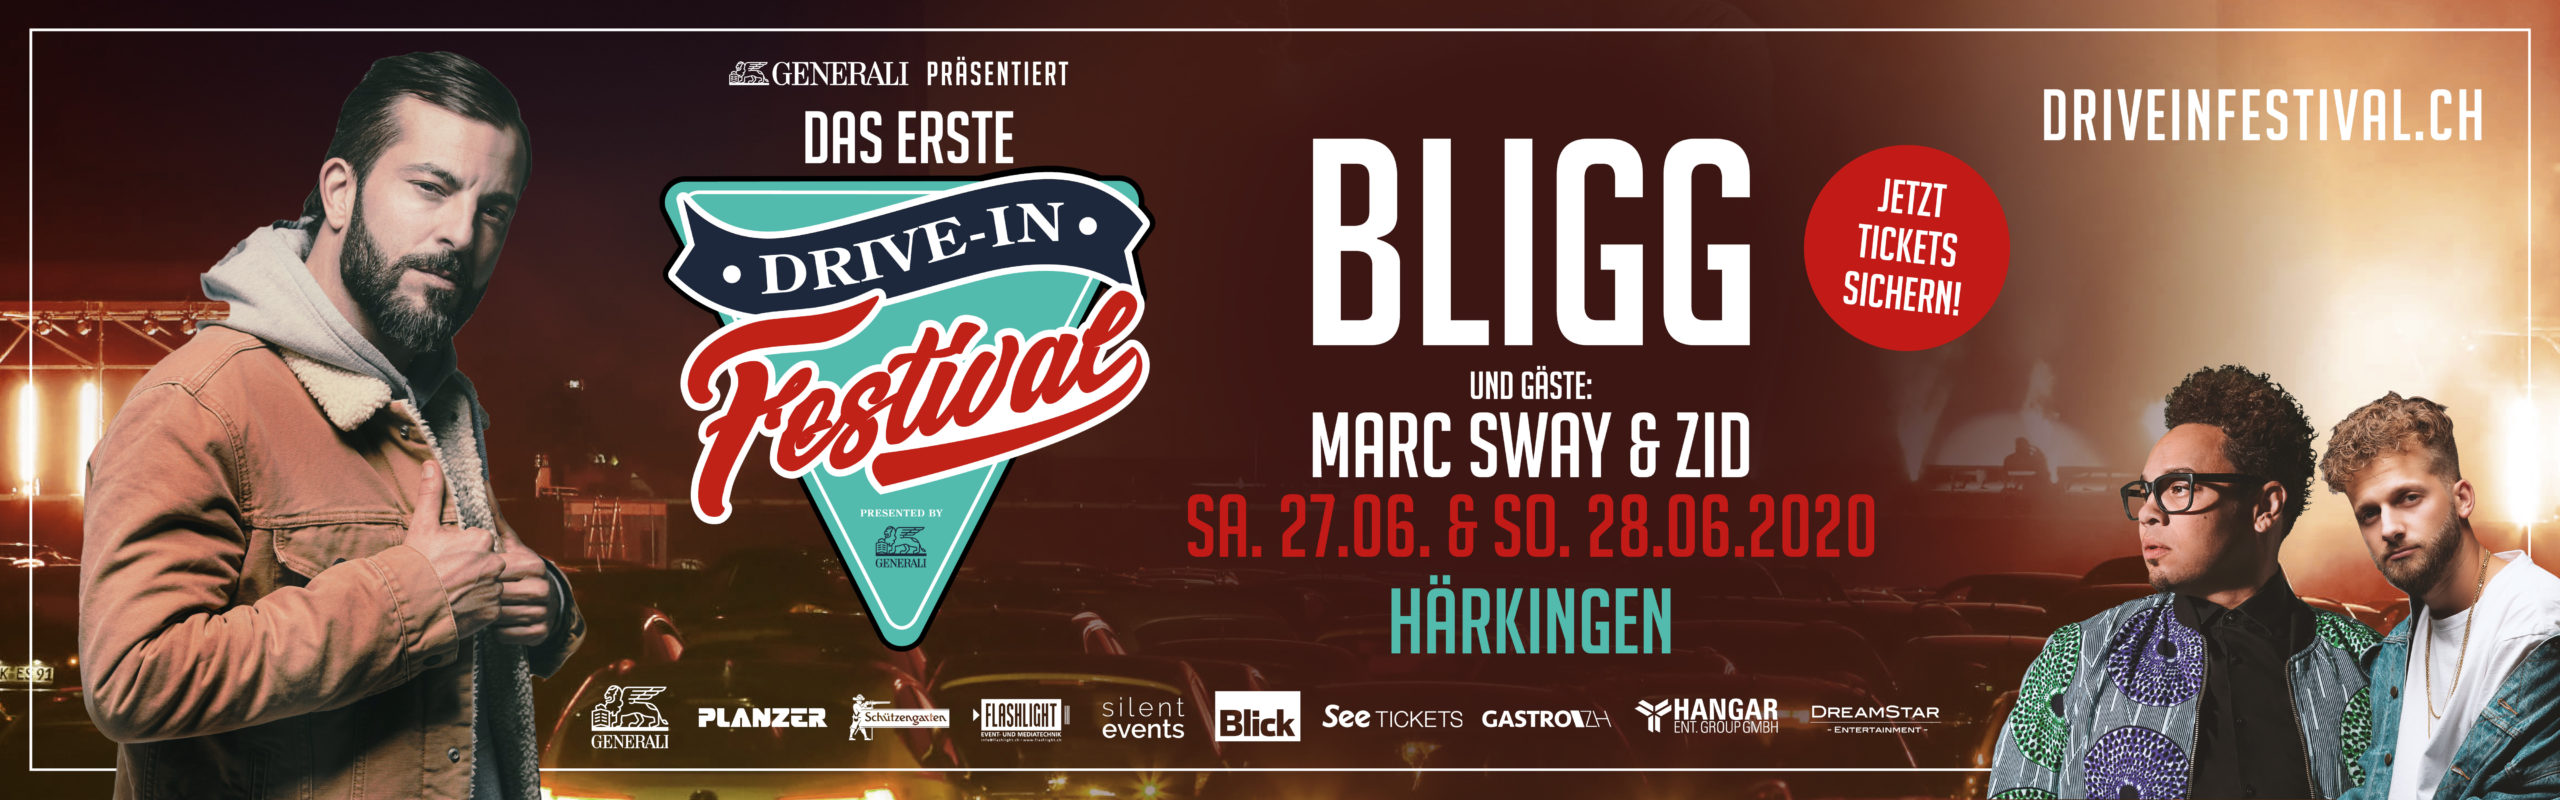 driveinfestival.ch